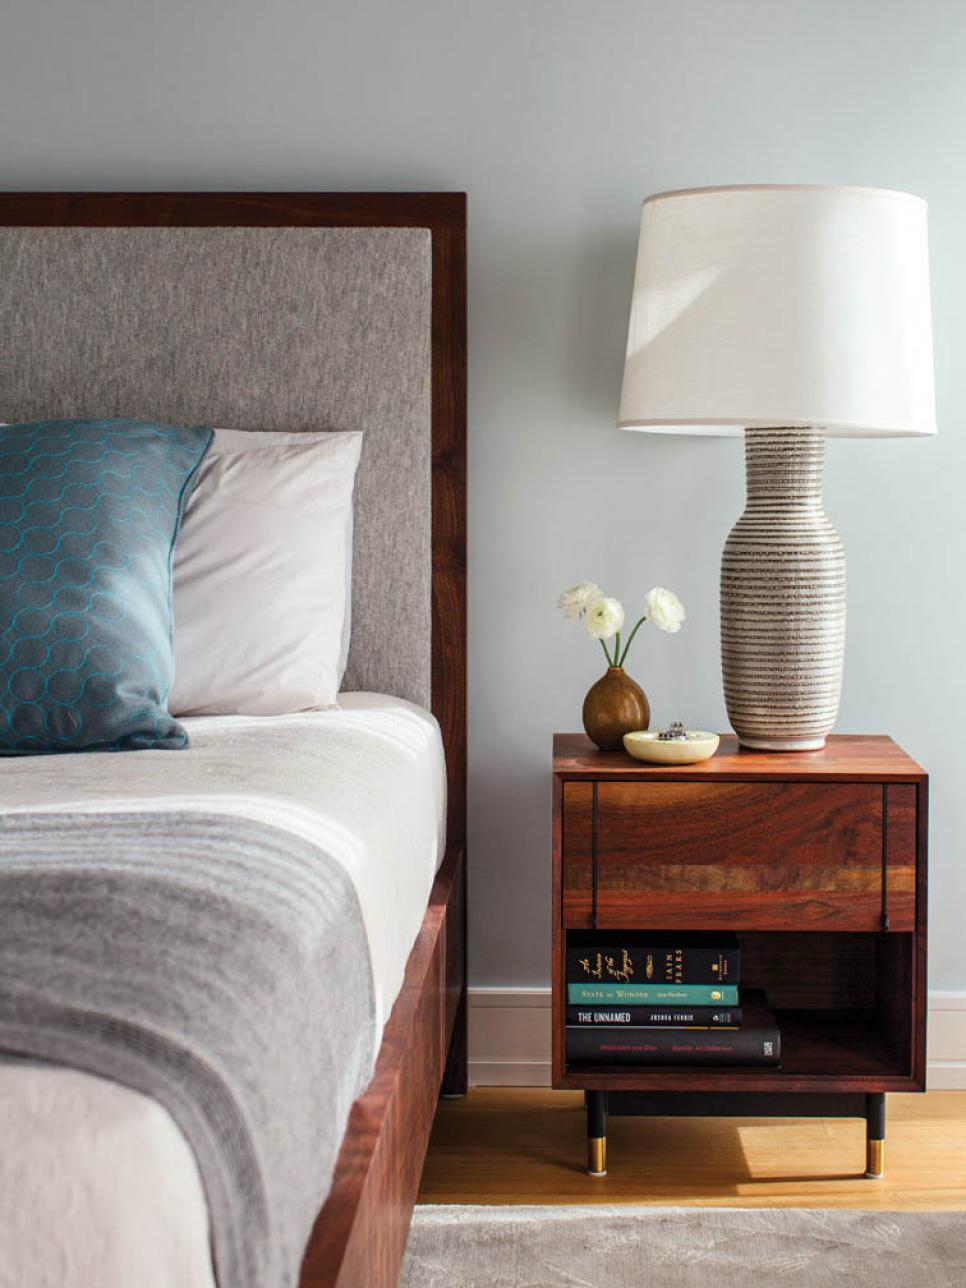 Uncluttered bedroom with soothing color palette